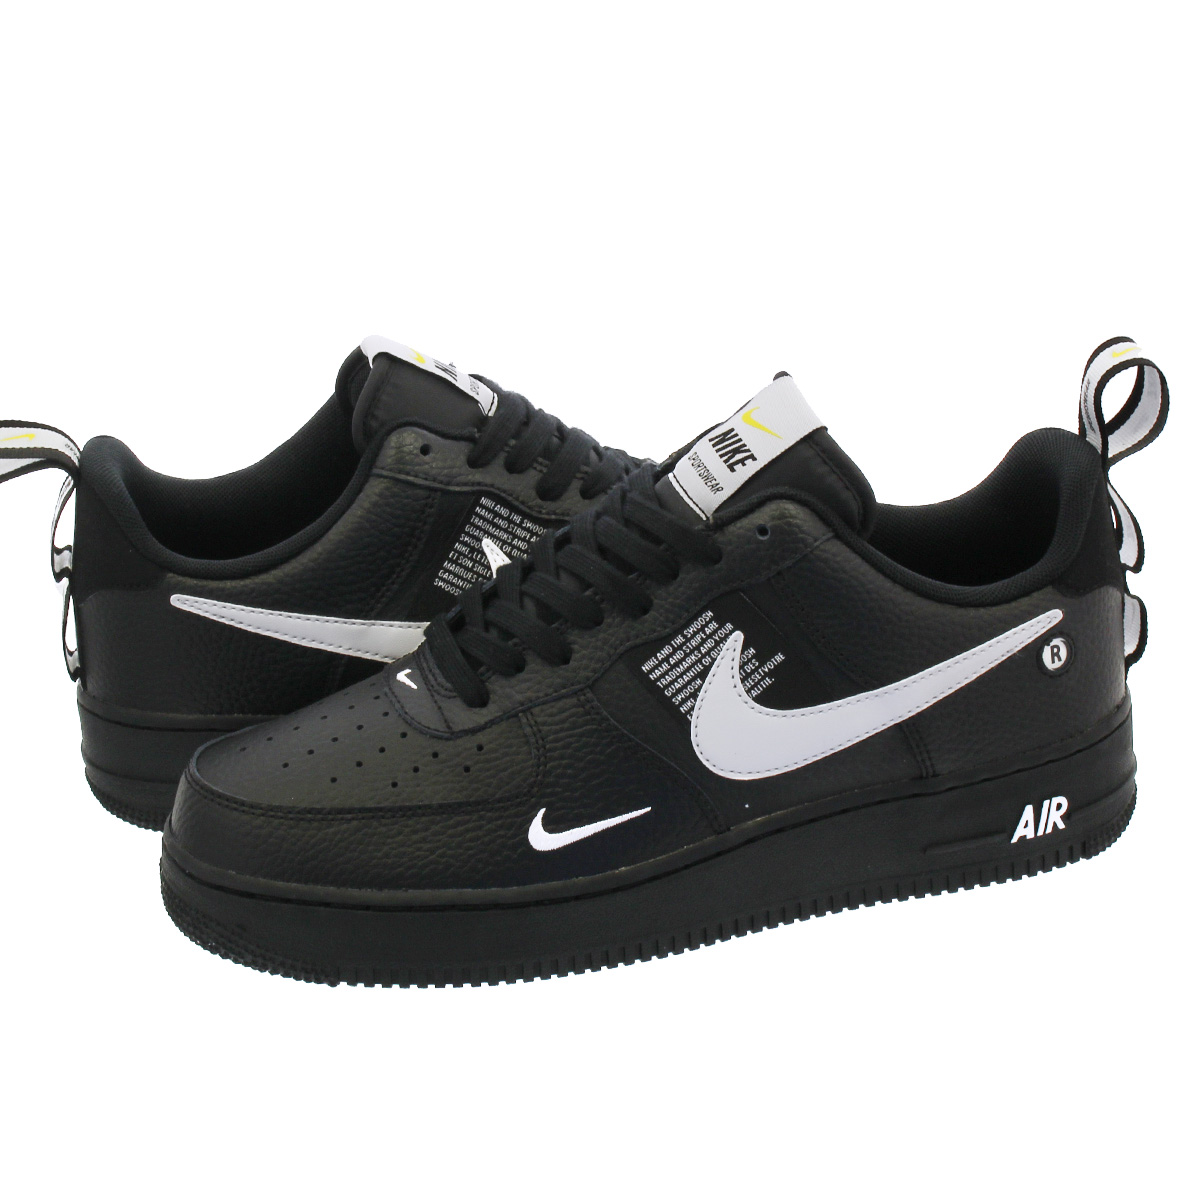 new product 65029 a686e NIKE AIR FORCE 1  07 LV8 UTILITY Nike air force 1  07 LV8 utility ...